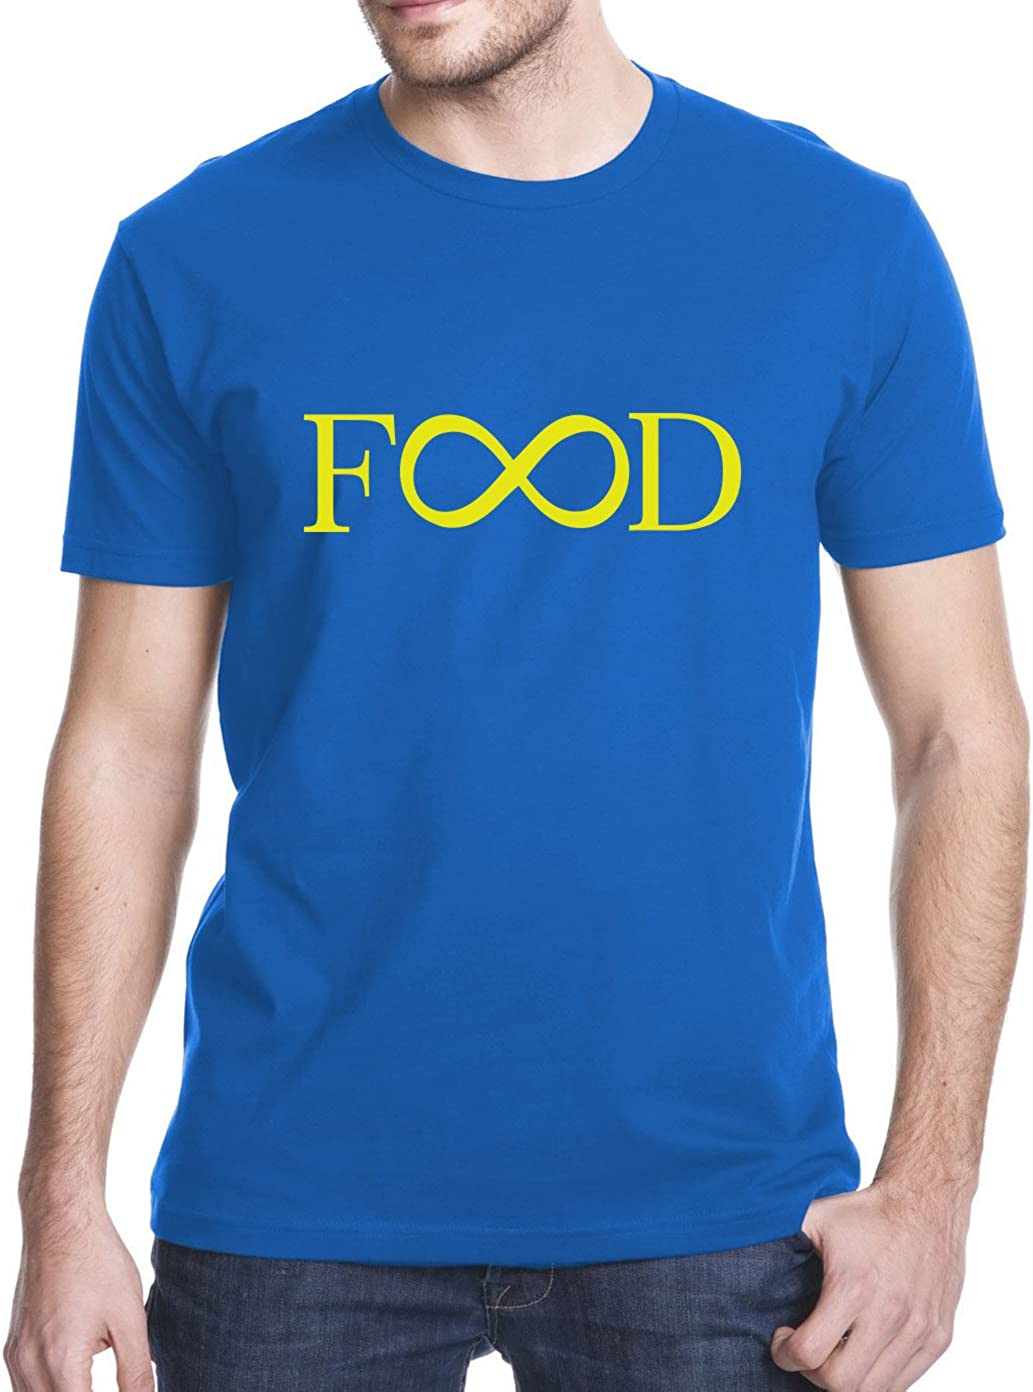 Gbond Apparel Food Infinity T-Shirt